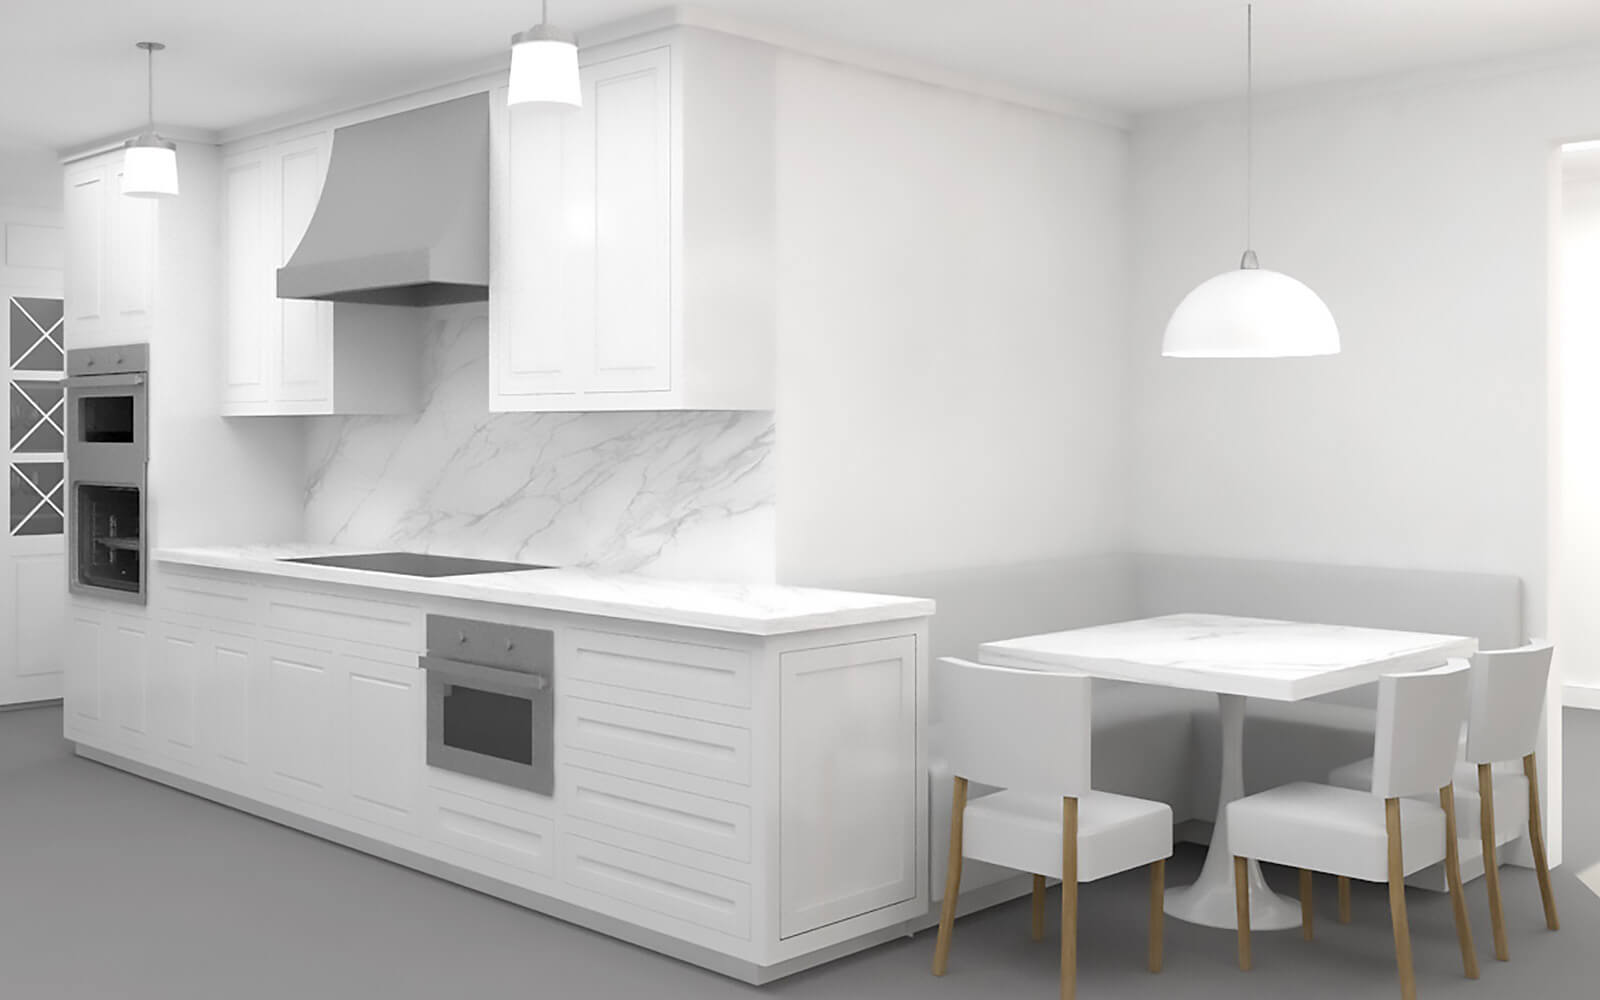 studio vara residential broadway co-op kitchen rendering